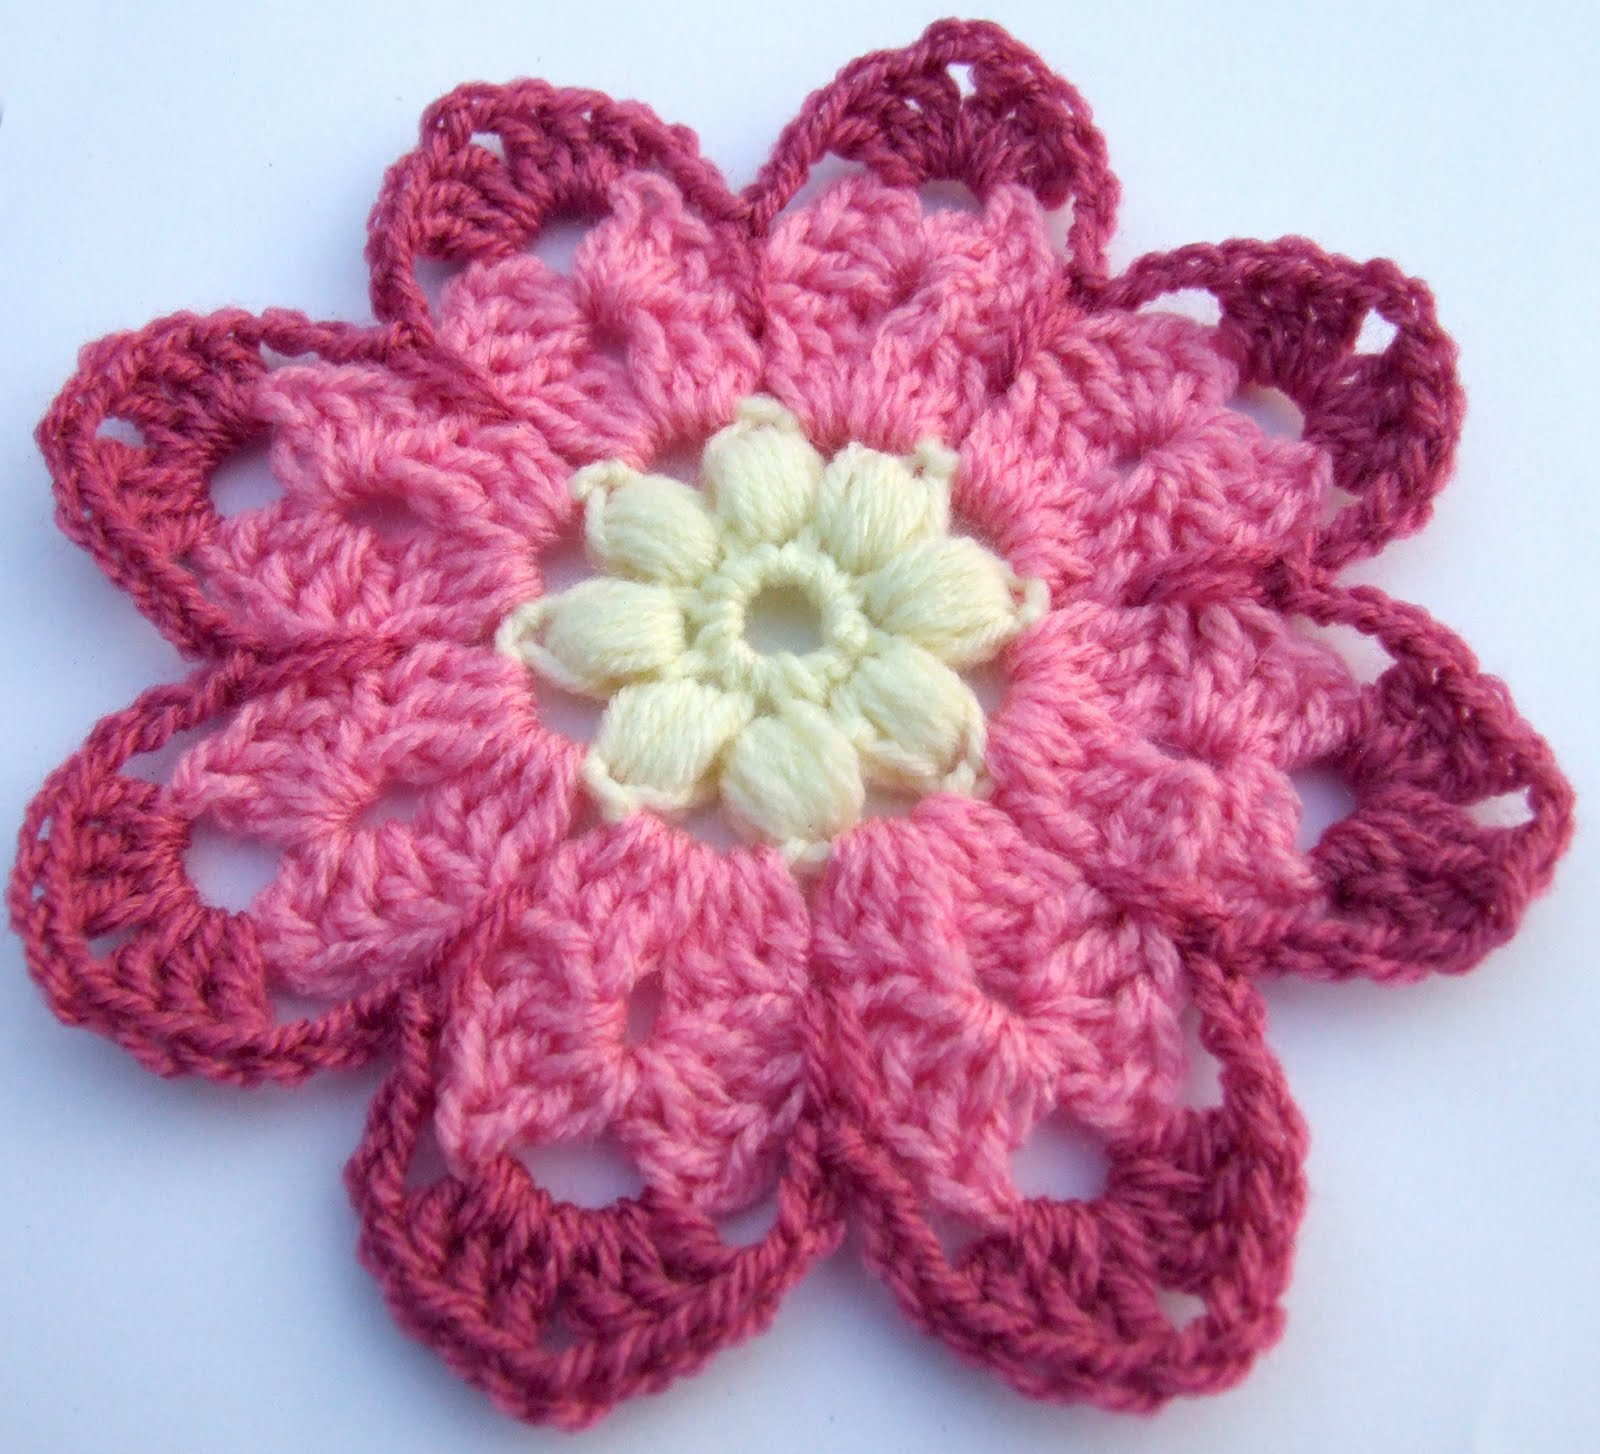 Free Crochet Patterns : Free Crochet Pattern Octagon Flower - leonie morgan